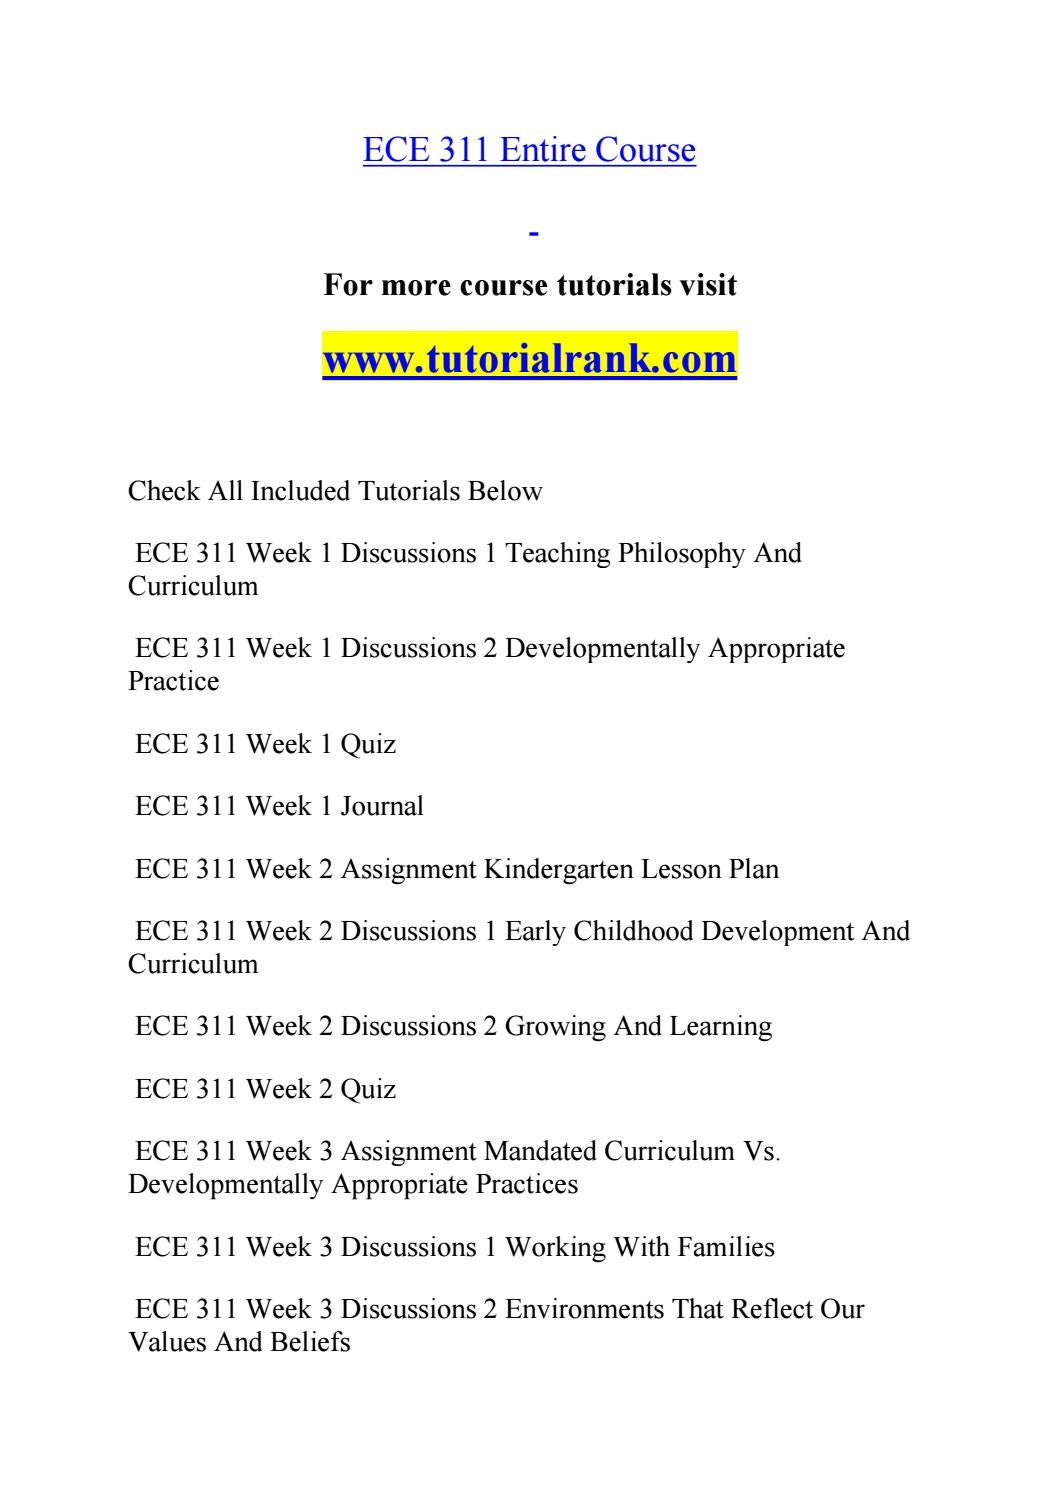 ECE 311 course Marvelous Learning / tutorialrank com by